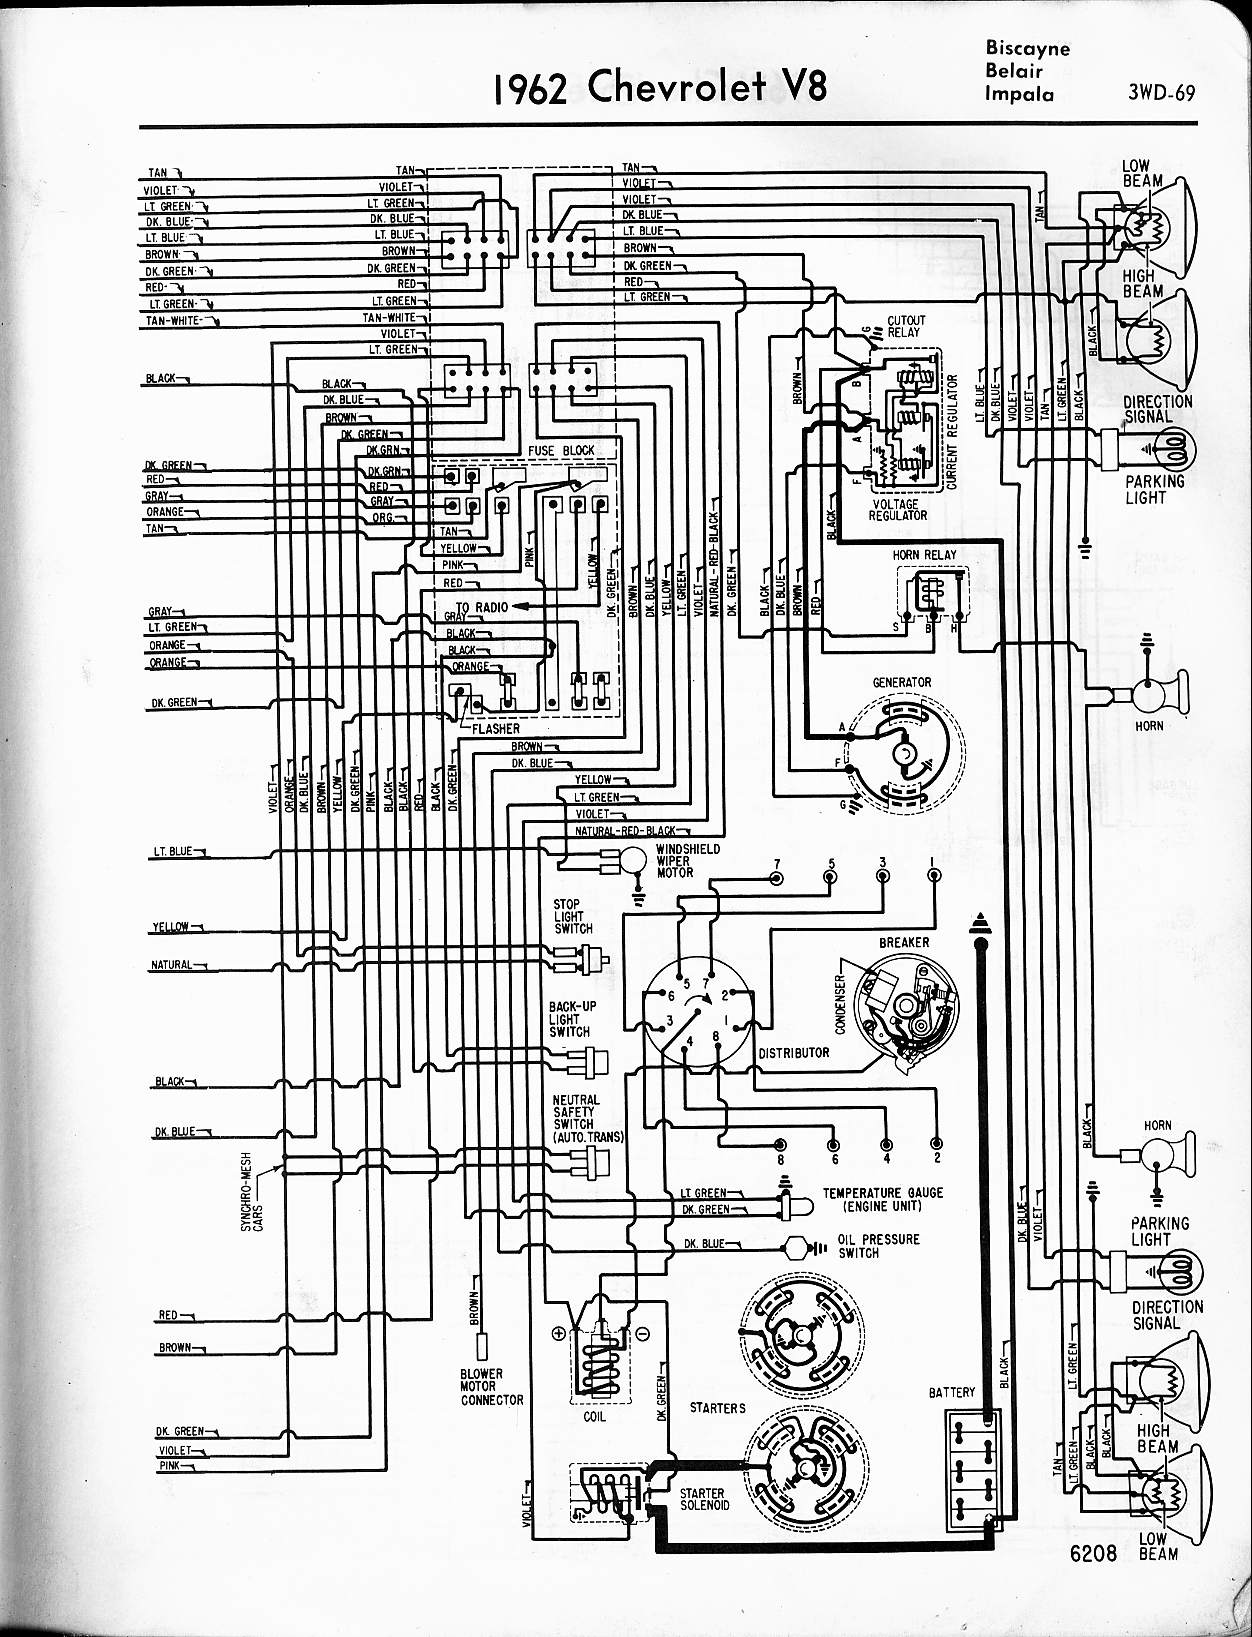 1969 Chevrolet Wiring Diagram Schematic Library 1973 Jeep Cj5 Alternator 1962 Impala Just Data Grand Prix